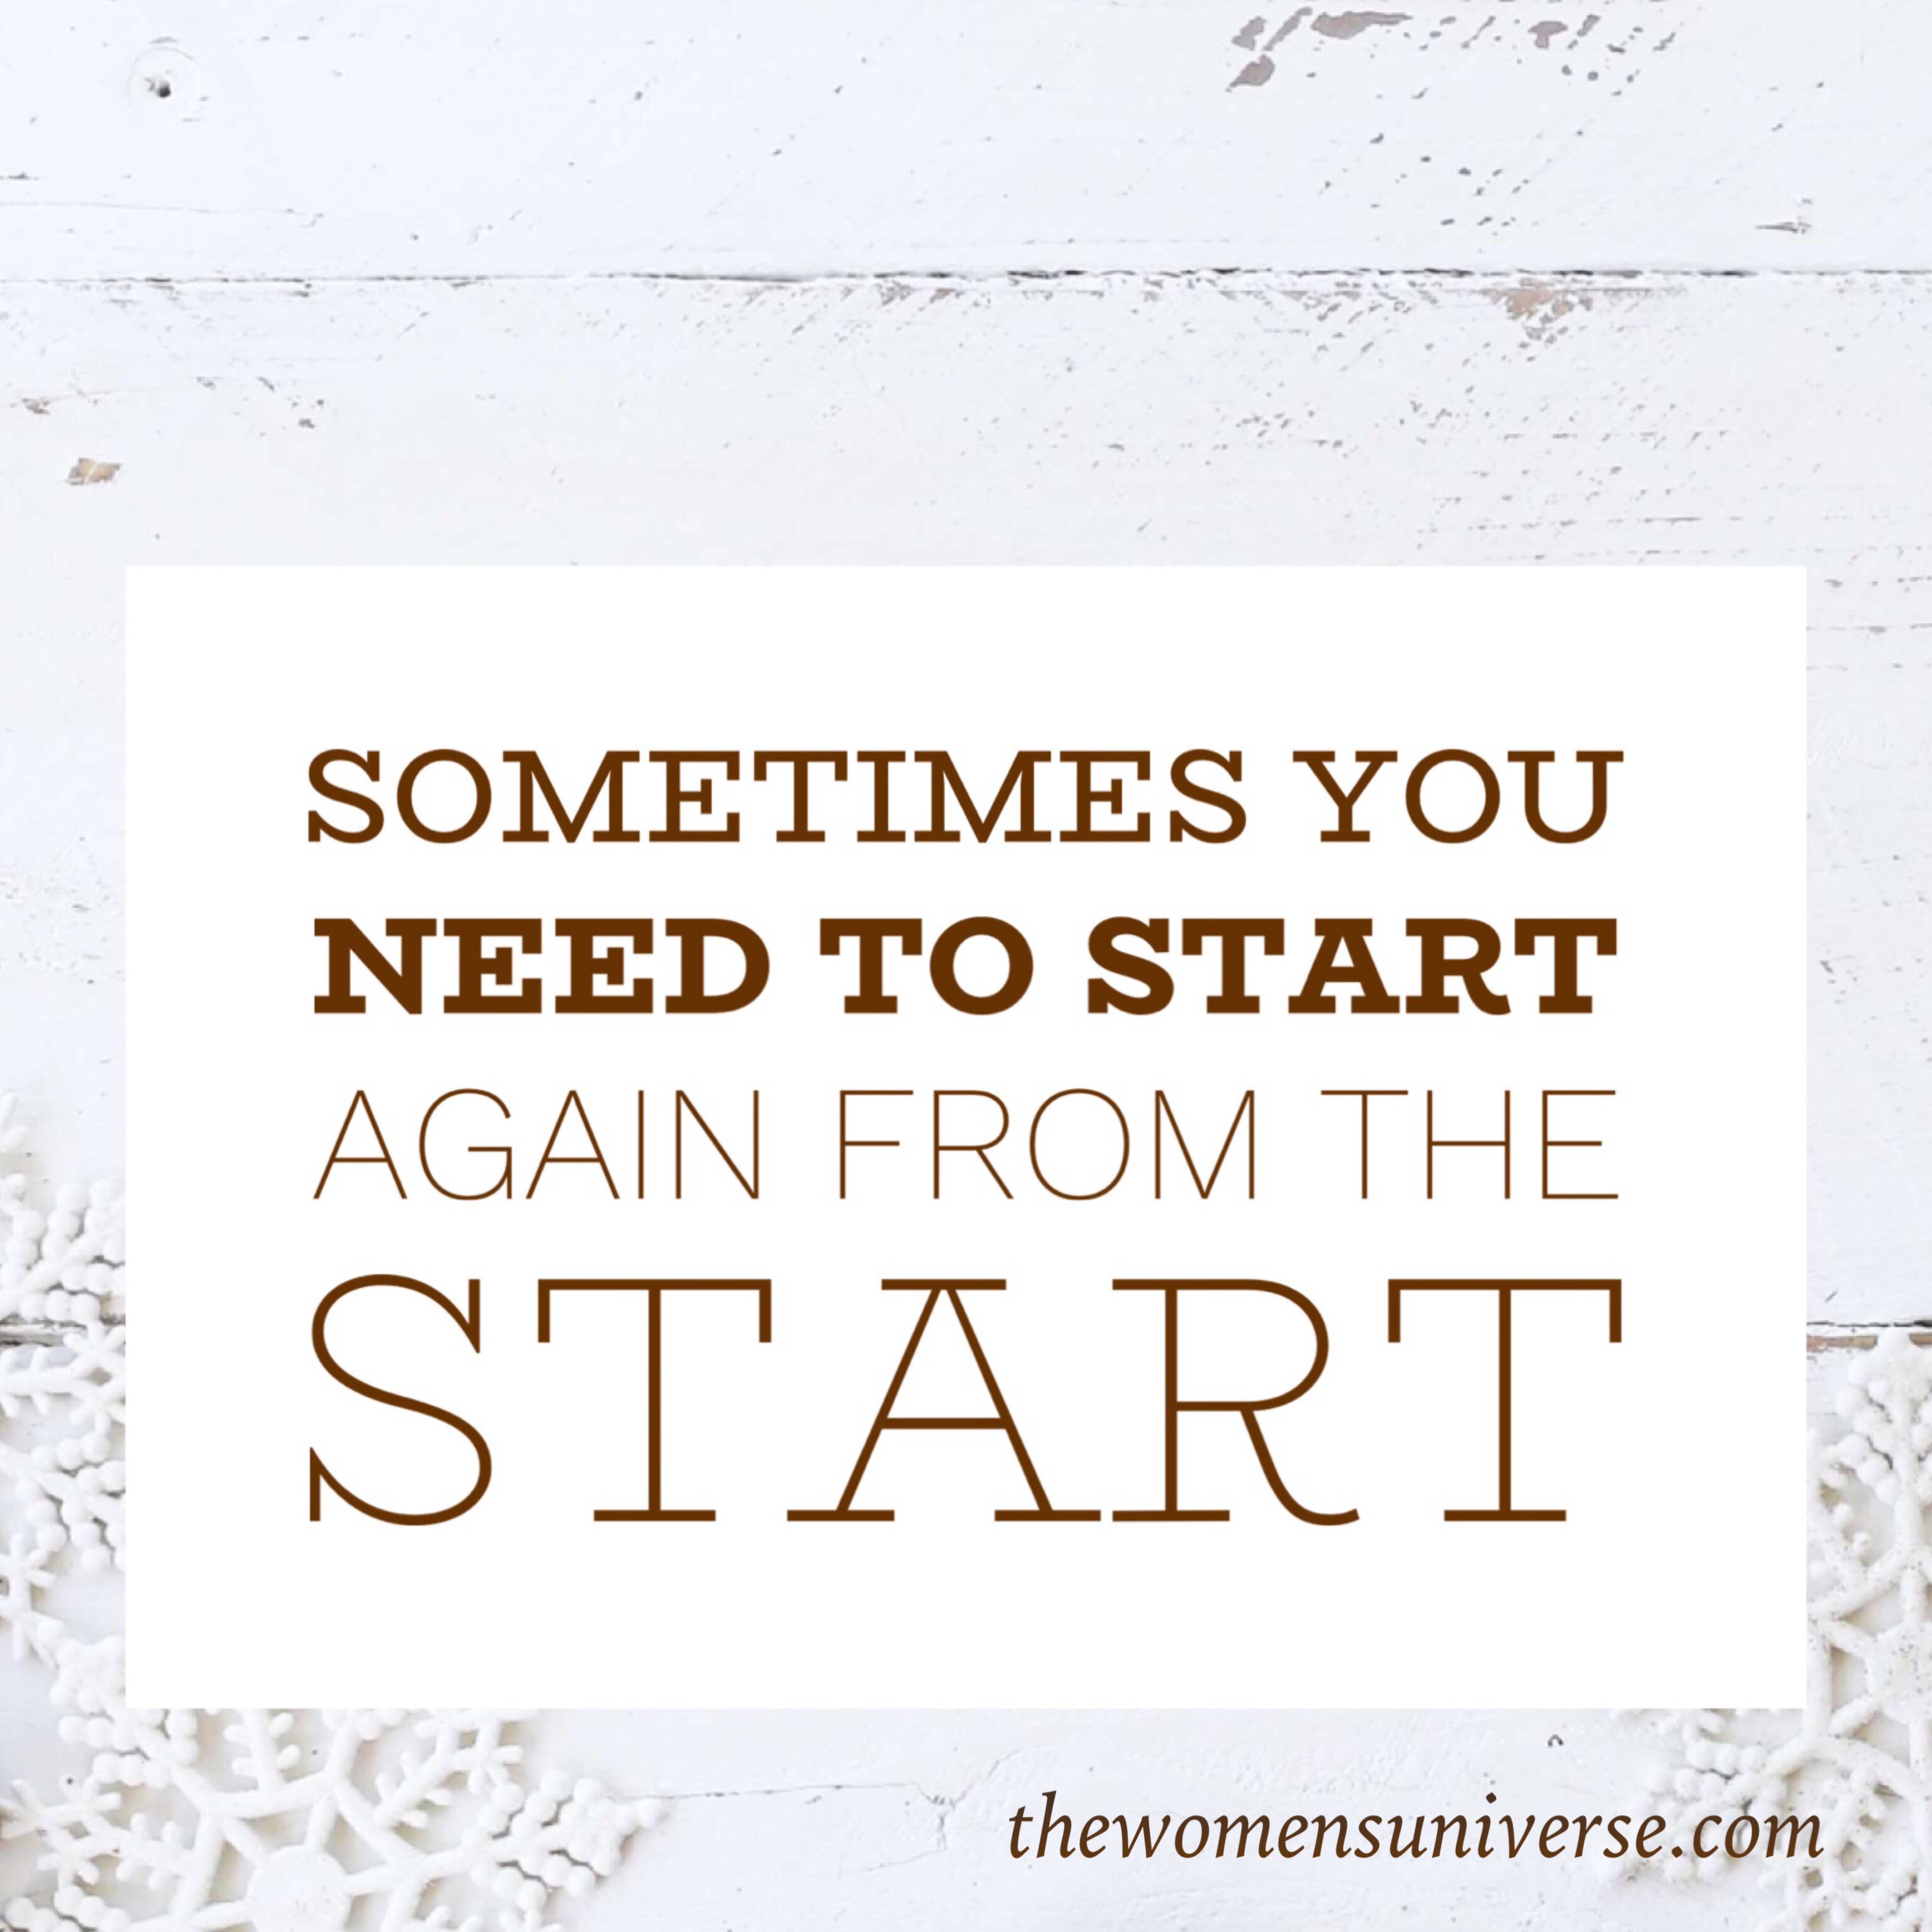 Never Fear Starting from the scratch. Life is unpredictable, you just need to  be strong enough to accept this fact.  When you fall down, stand up, stand again, stand better! #nevergiveup#bethewomenyouwanttobe#livelife#lovelife#giveyourbest#startbetter#startagain